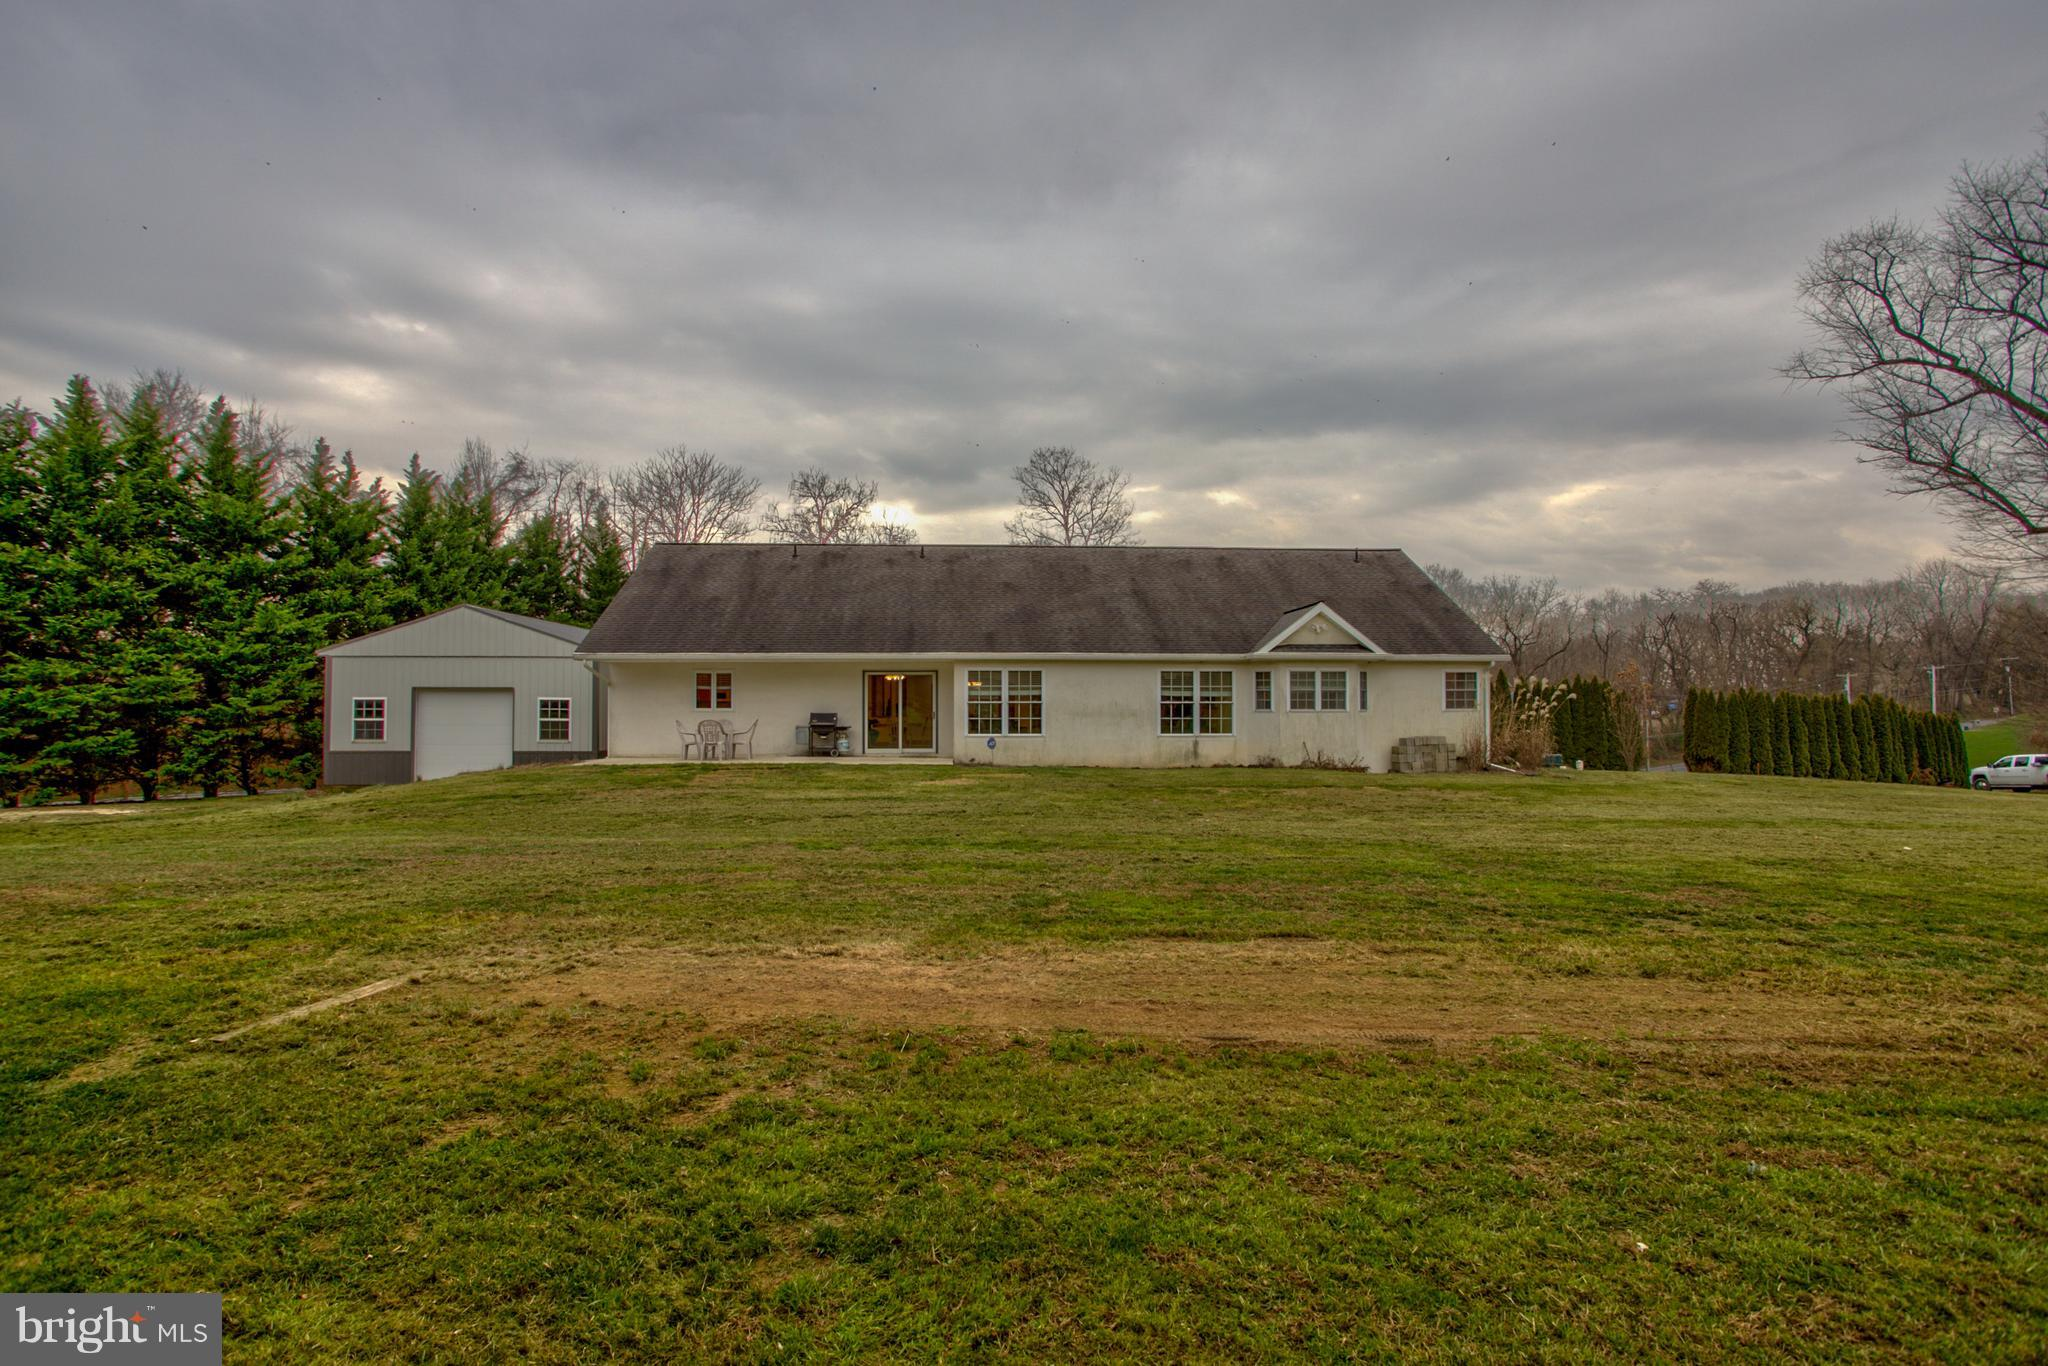 1421 HABECKER ROAD, COLUMBIA, PA 17512